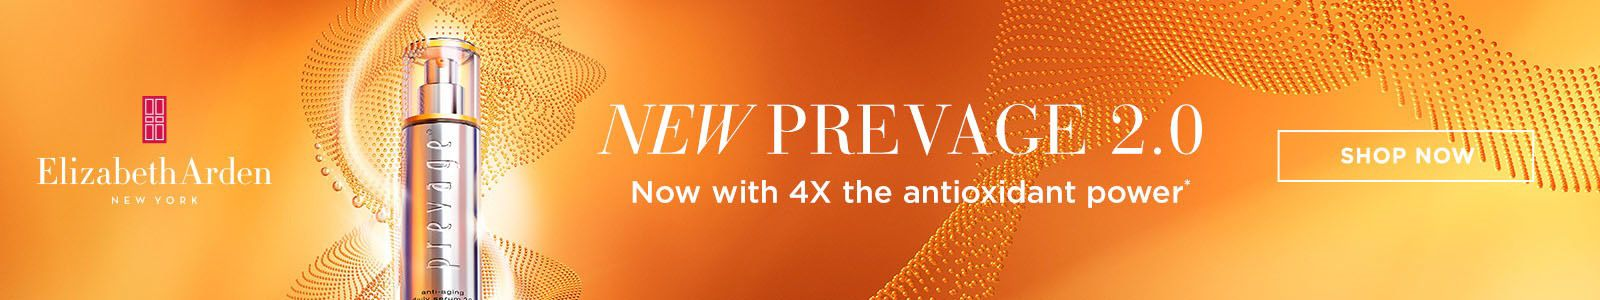 Elizabeth Arden, New York, New Prevage 2.0, Now with 4X the antioxidant power, Shop Now